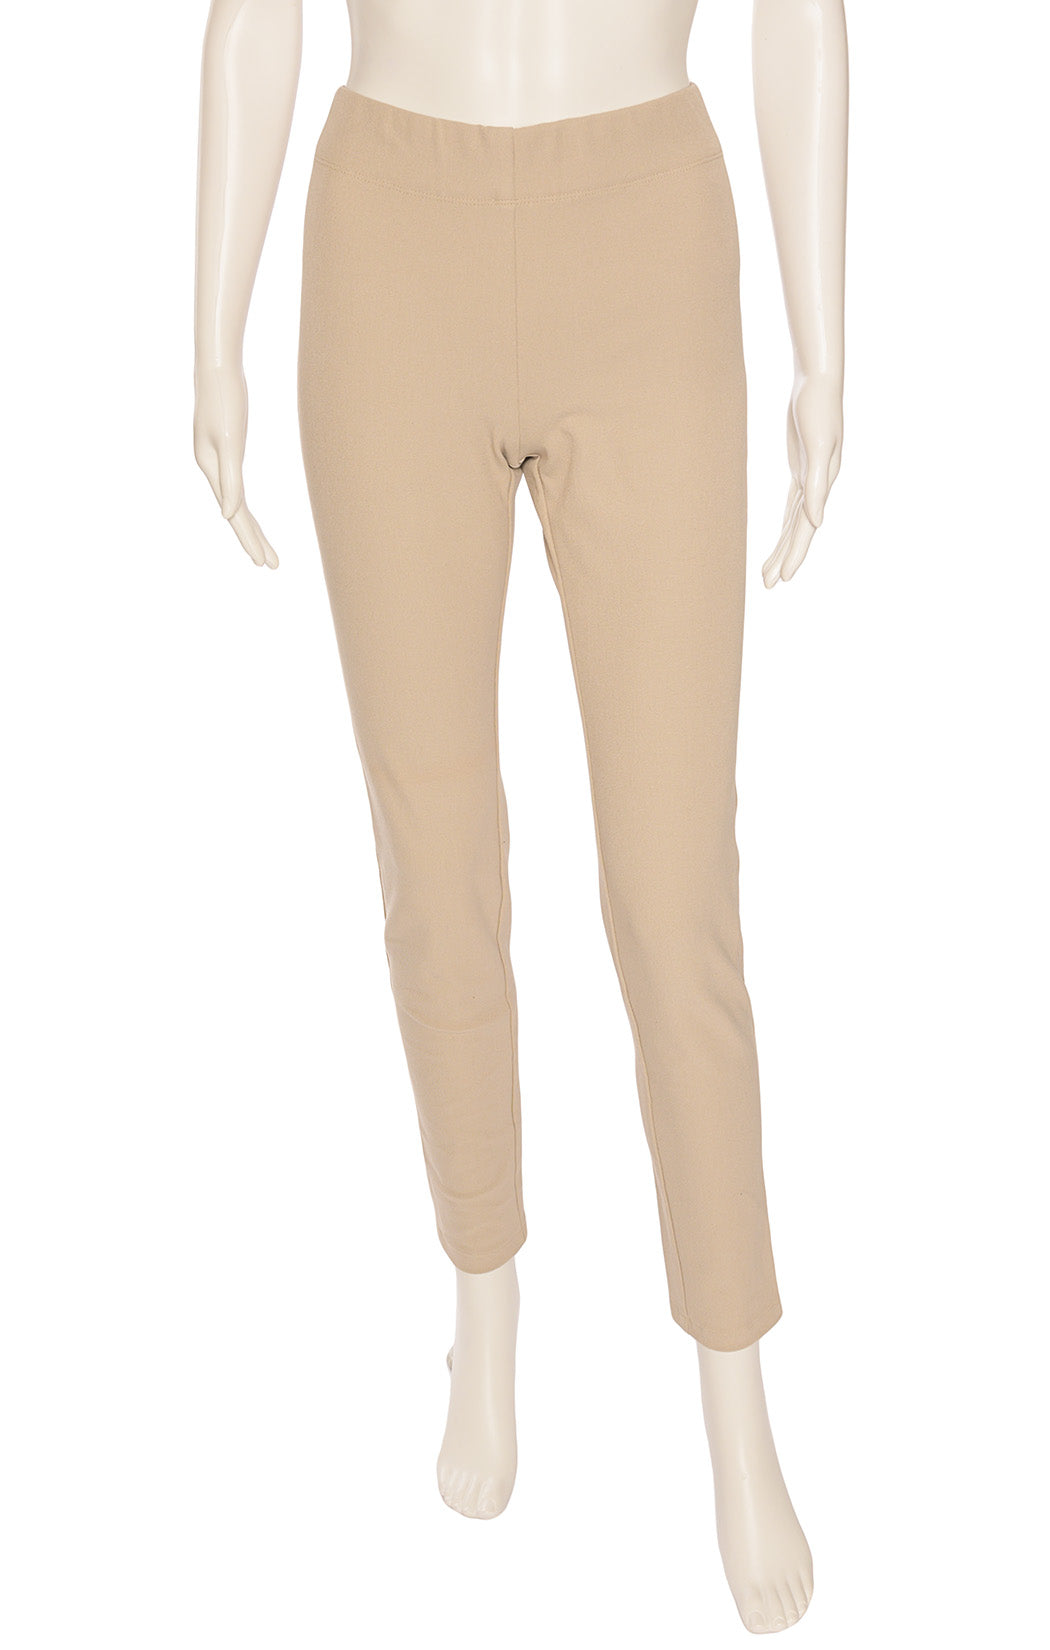 Khaki form fitting gabardine leggings with elastic waistband